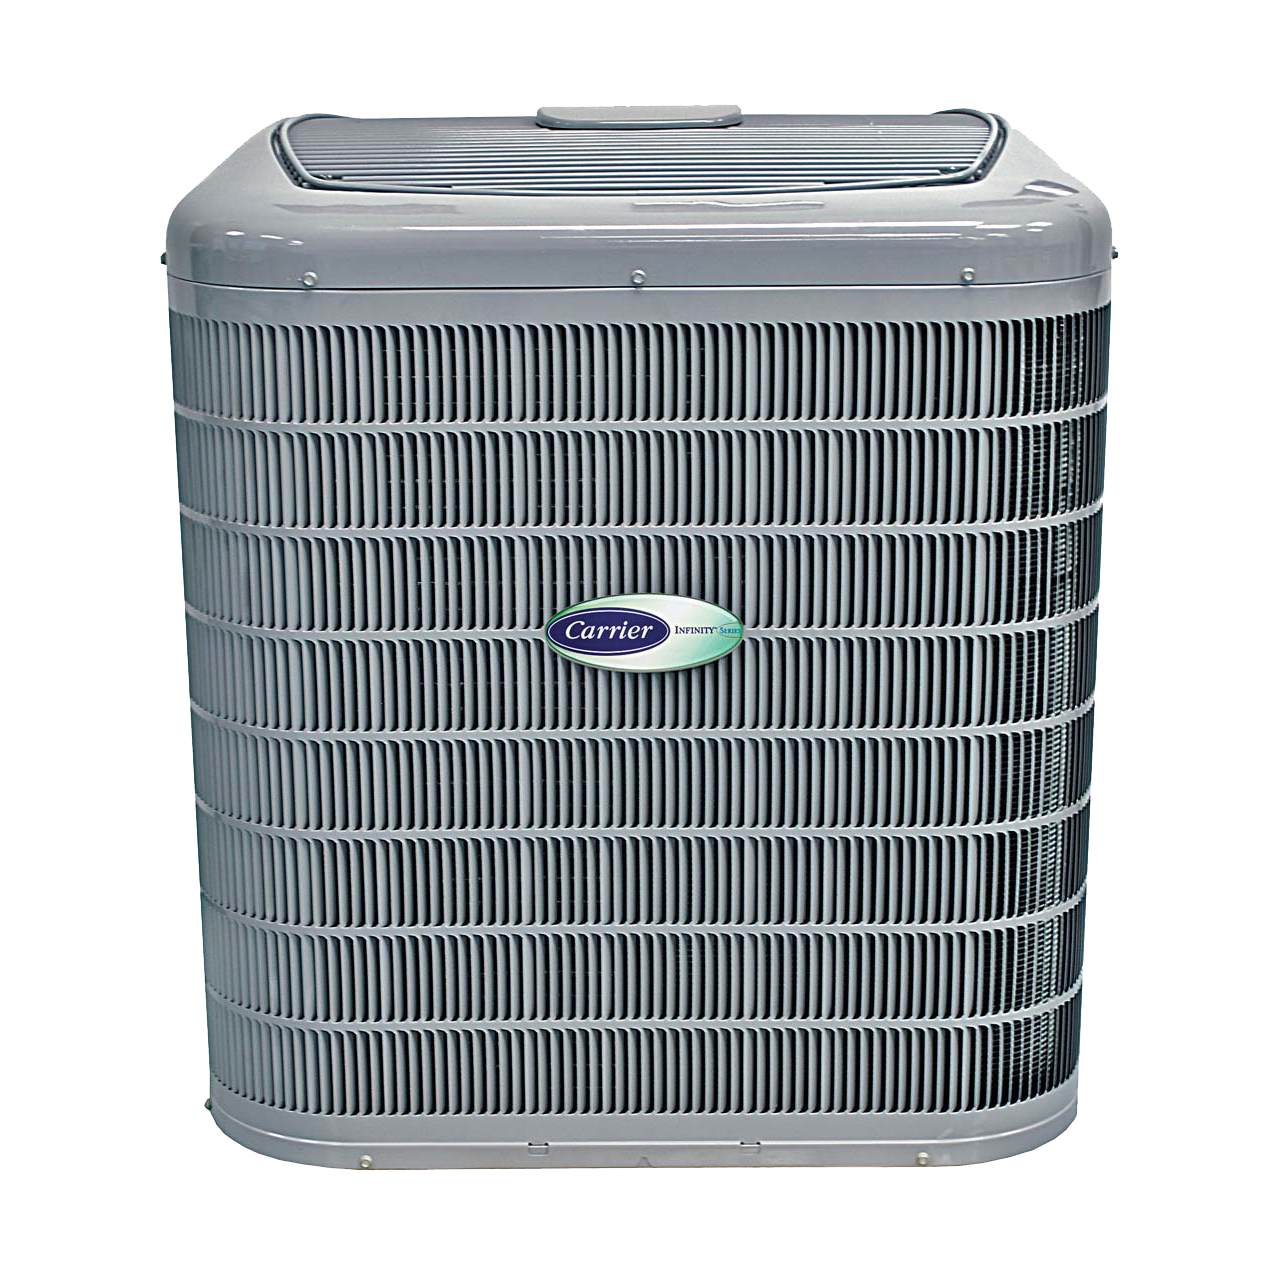 Best Central Air Conditioner 2021 Infinity 21 Central Air Conditioner Unit   24ANB1 | Carrier   Home